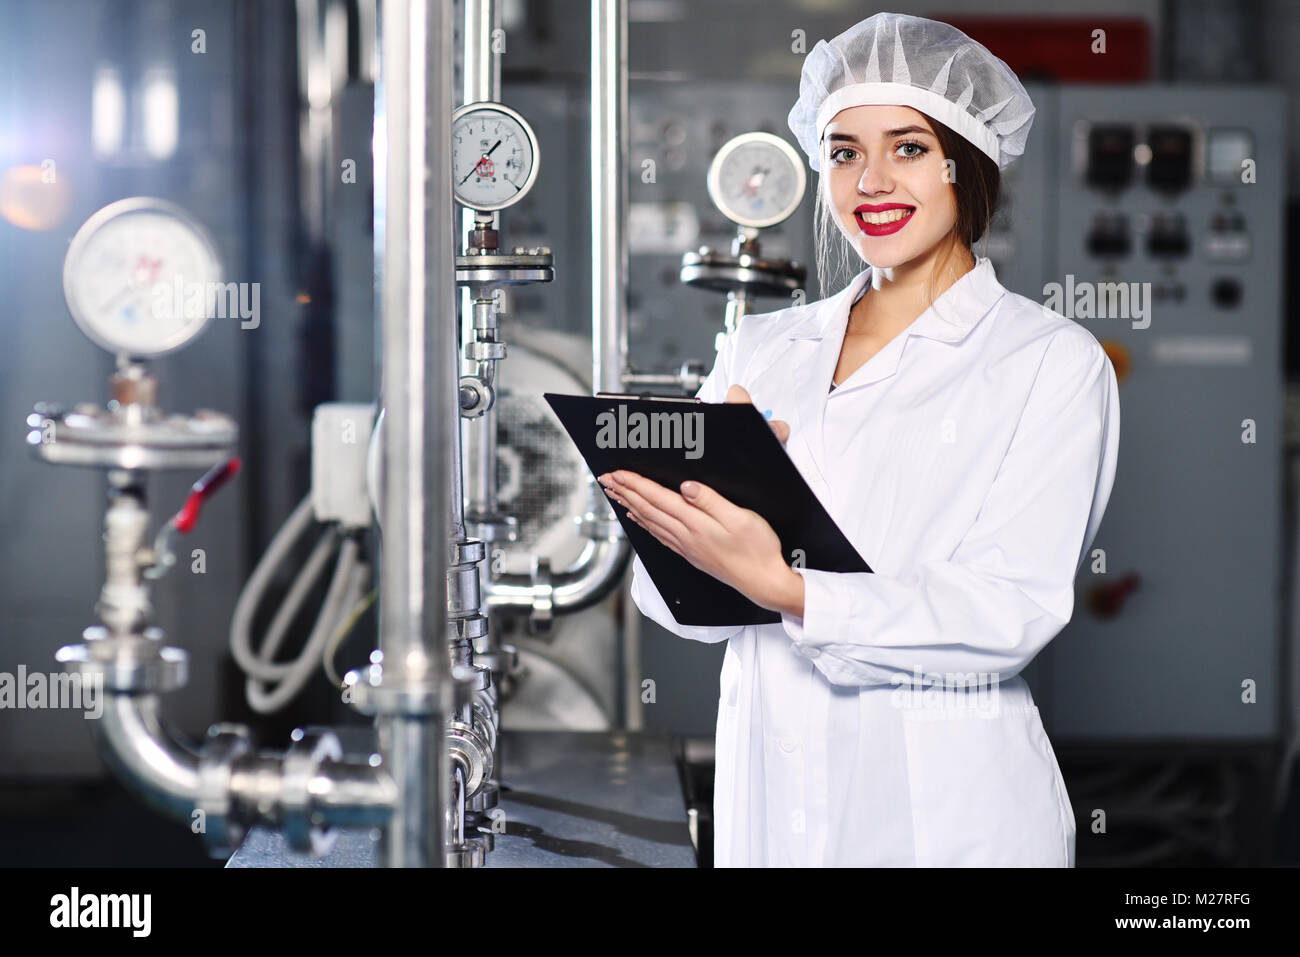 girl is making a note on paper against the background of factory equipment - Stock Image